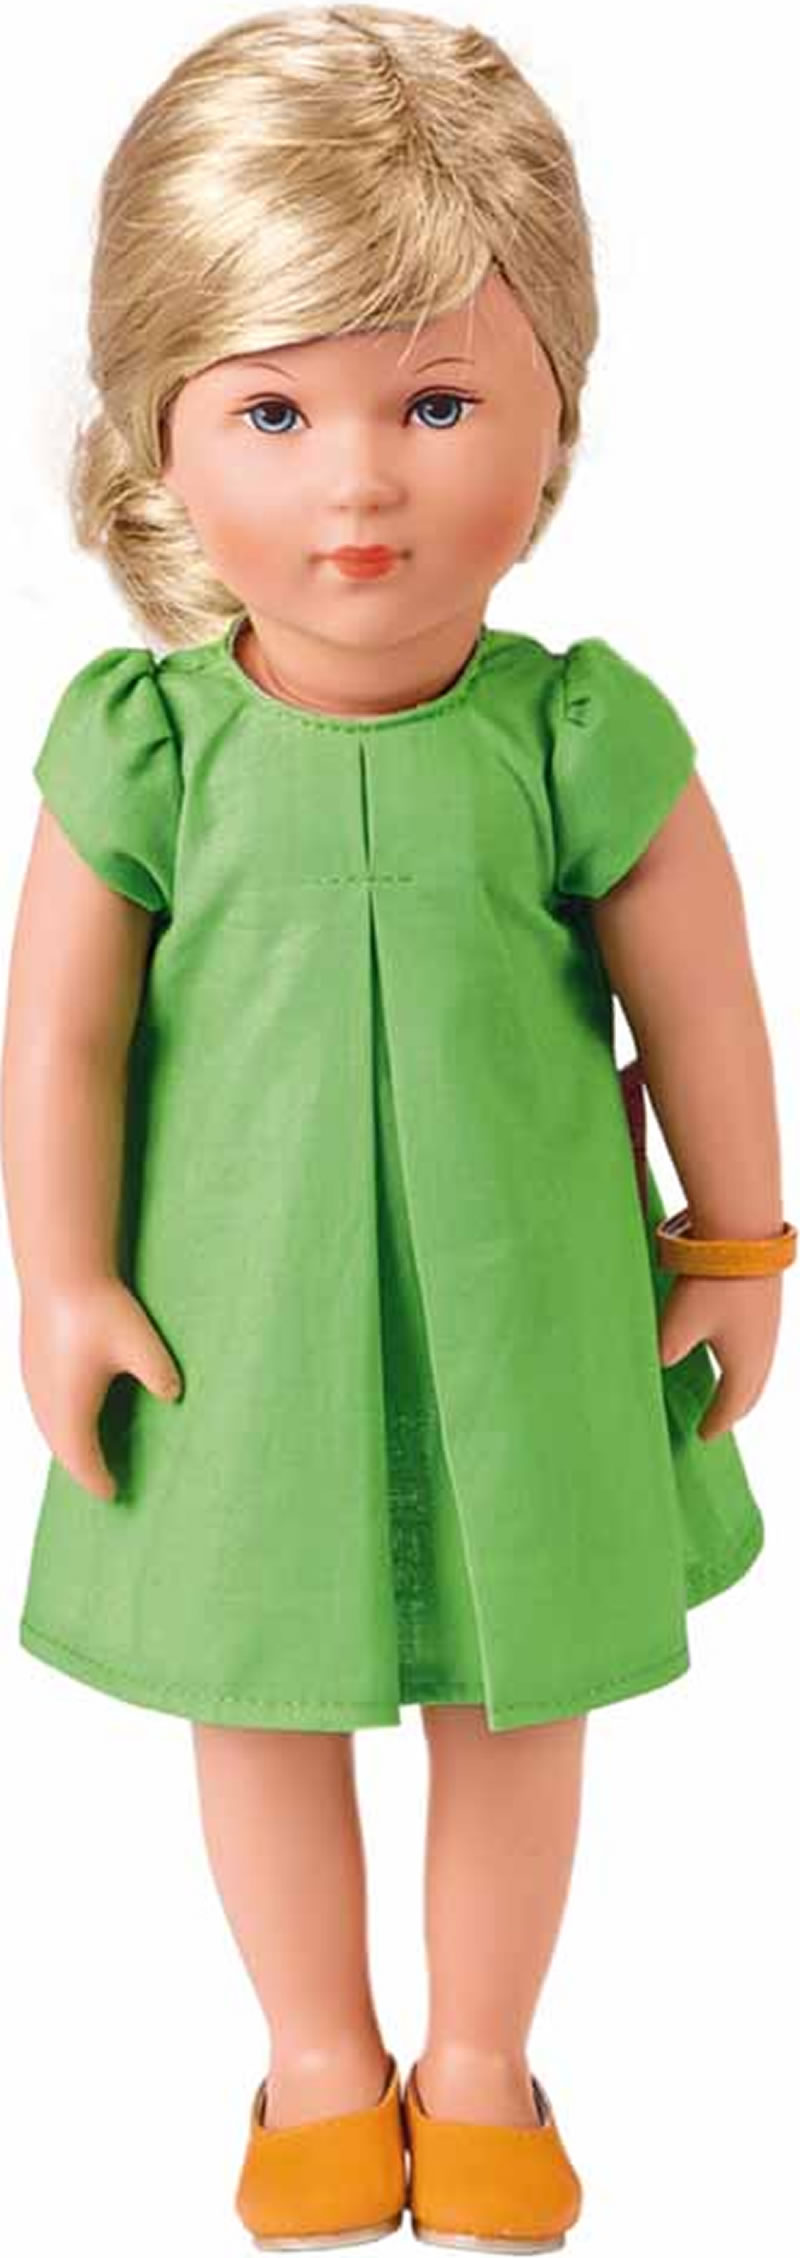 K 228 The Kruse Doll Sweet Girl Gina 41 Cm 41567 Online At